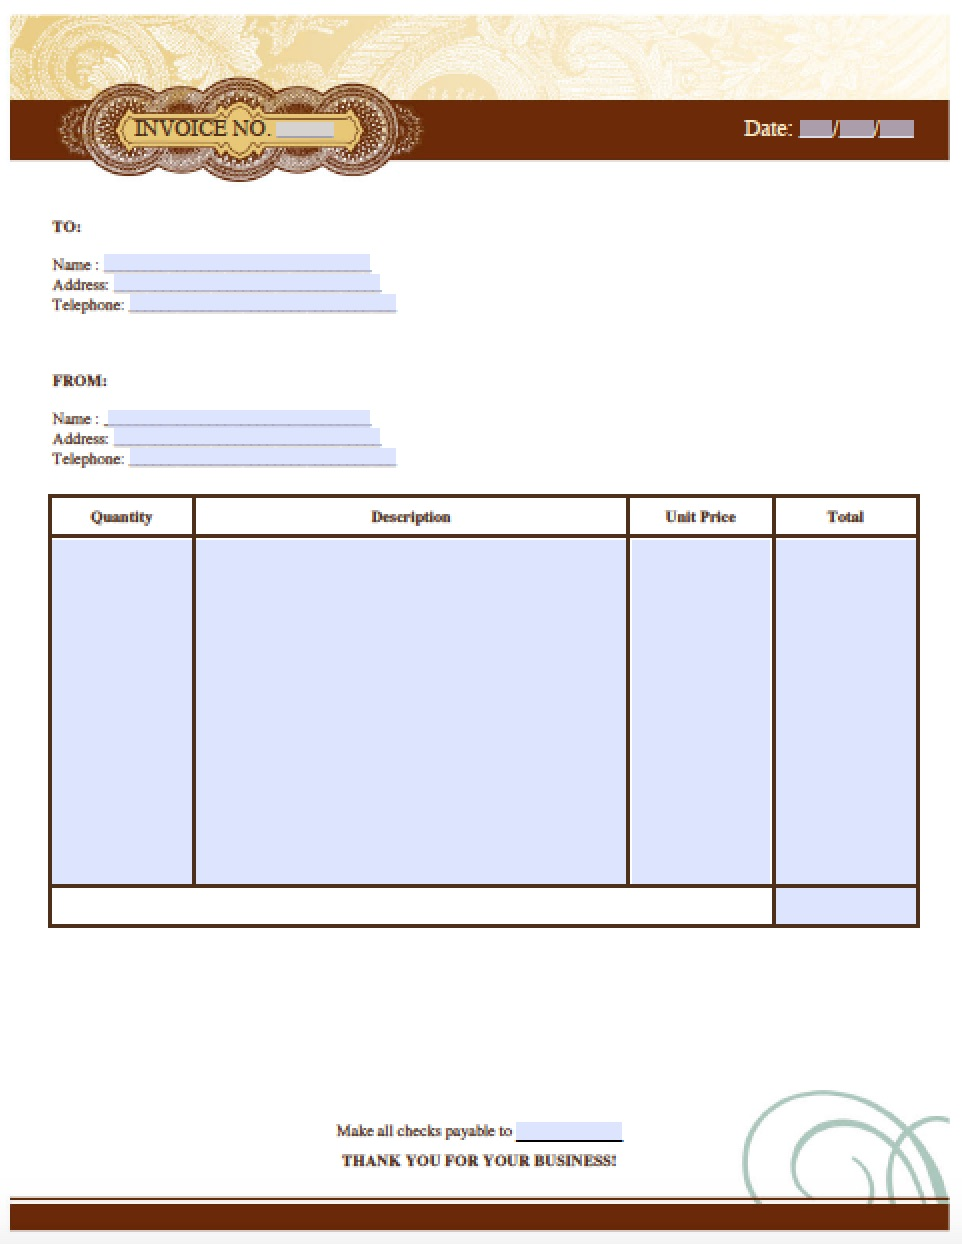 Free Artist Invoice Template Excel PDF Word Doc - Free word document invoice template for service business